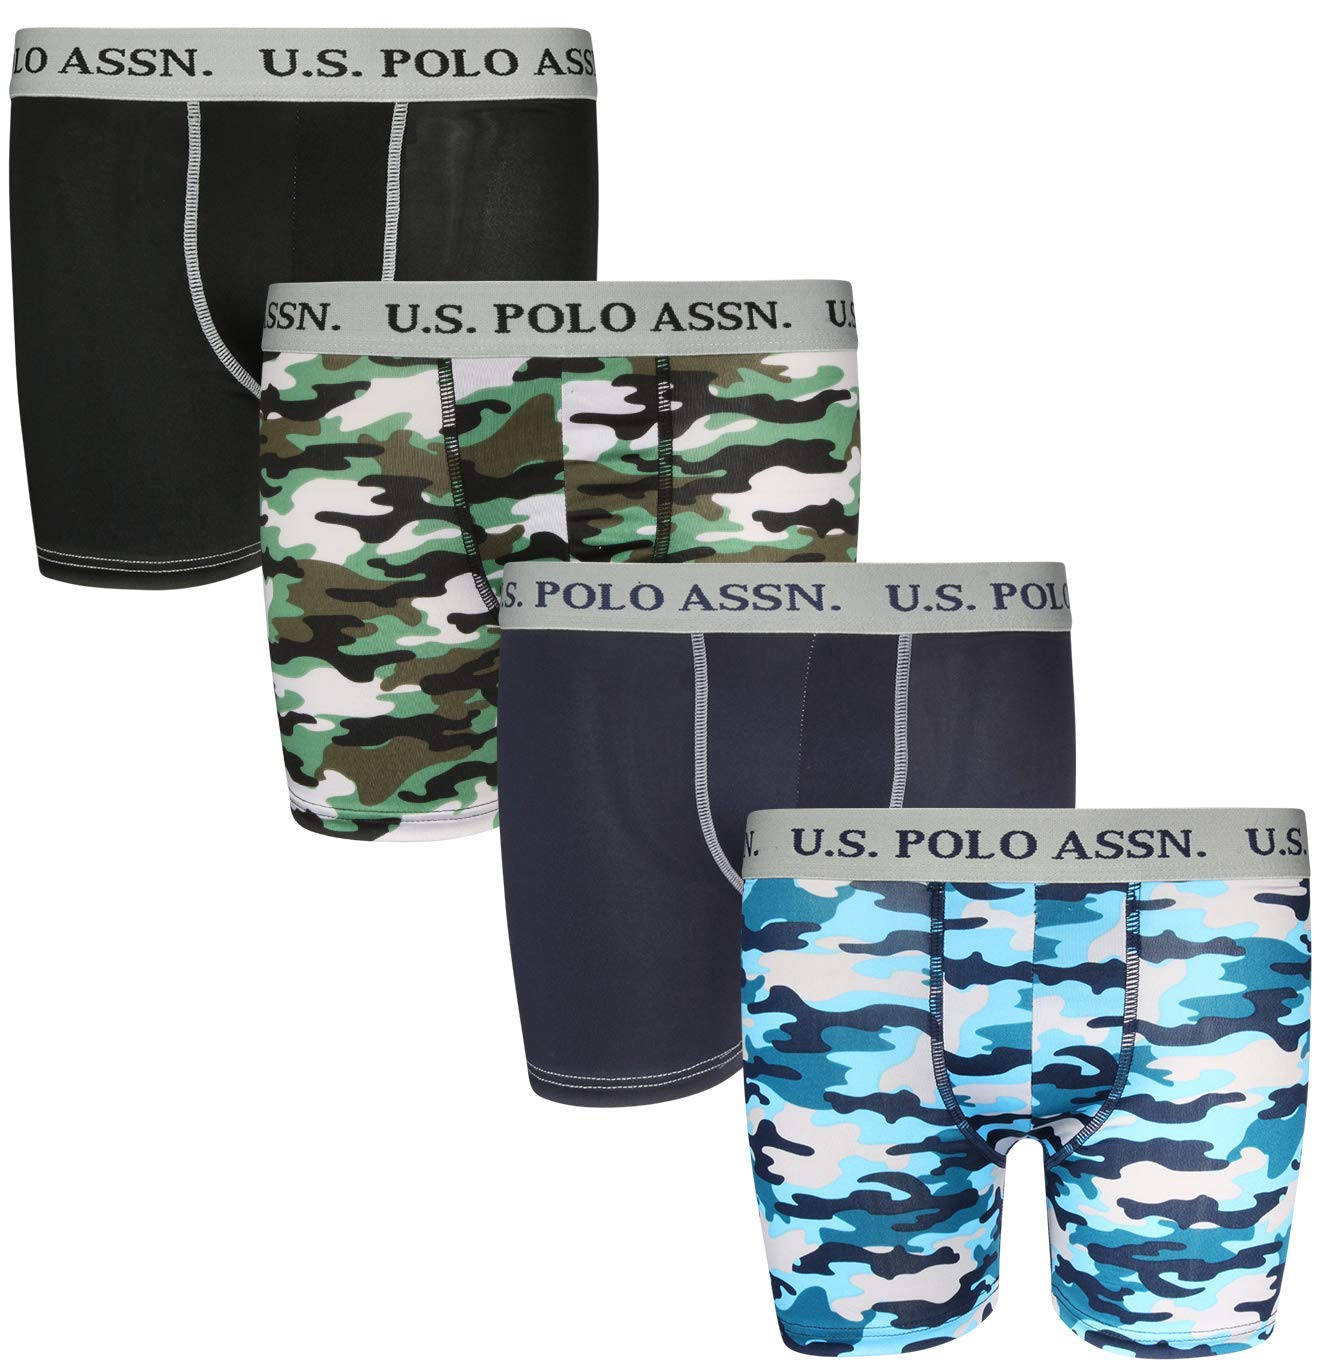 U.S. Polo Assn. Boys' Performance Active Compression Underwear Boxer Briefs (4 Pack)